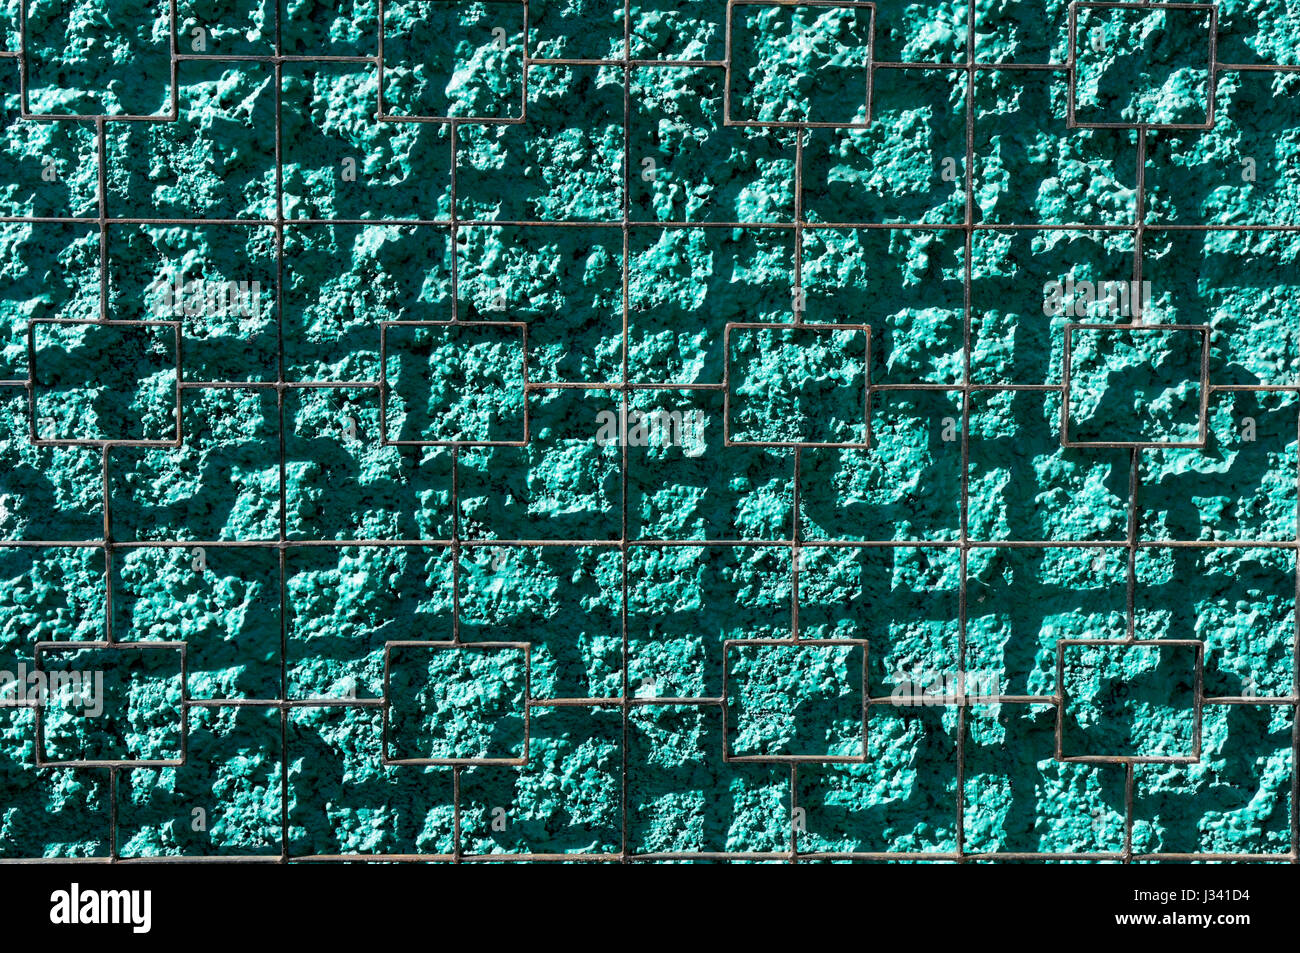 Wire grid casting square shadows on a bright green stucco wall abstract background - Stock Image